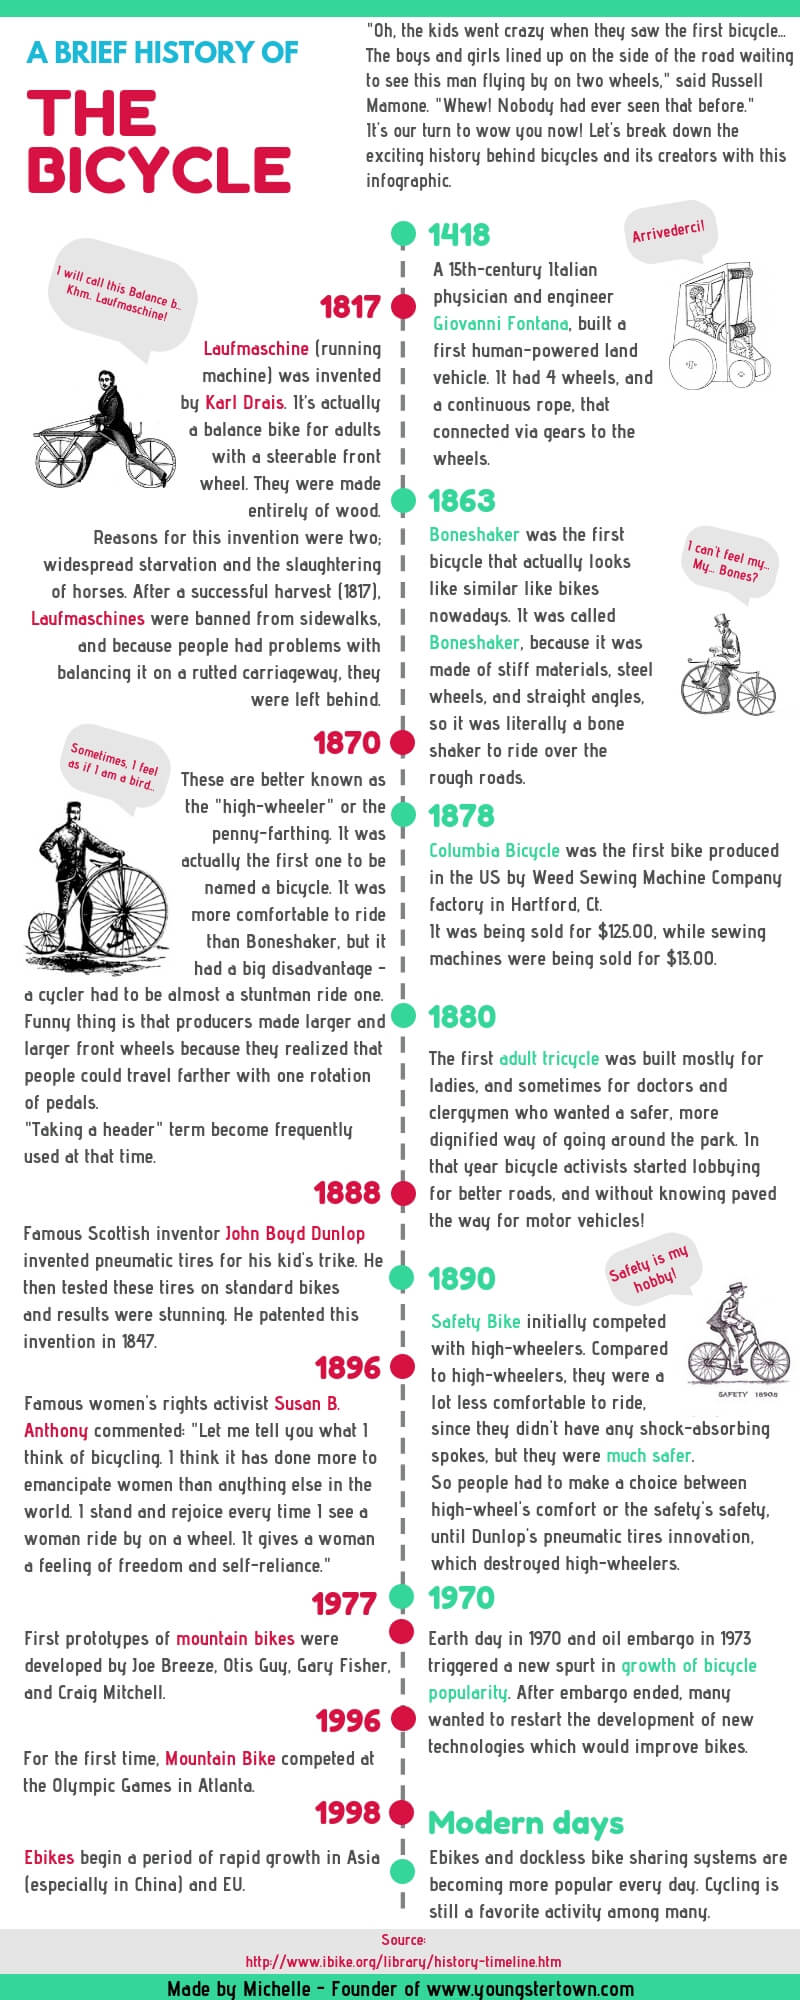 history-of-bicycles-timeline-infographic-plaza